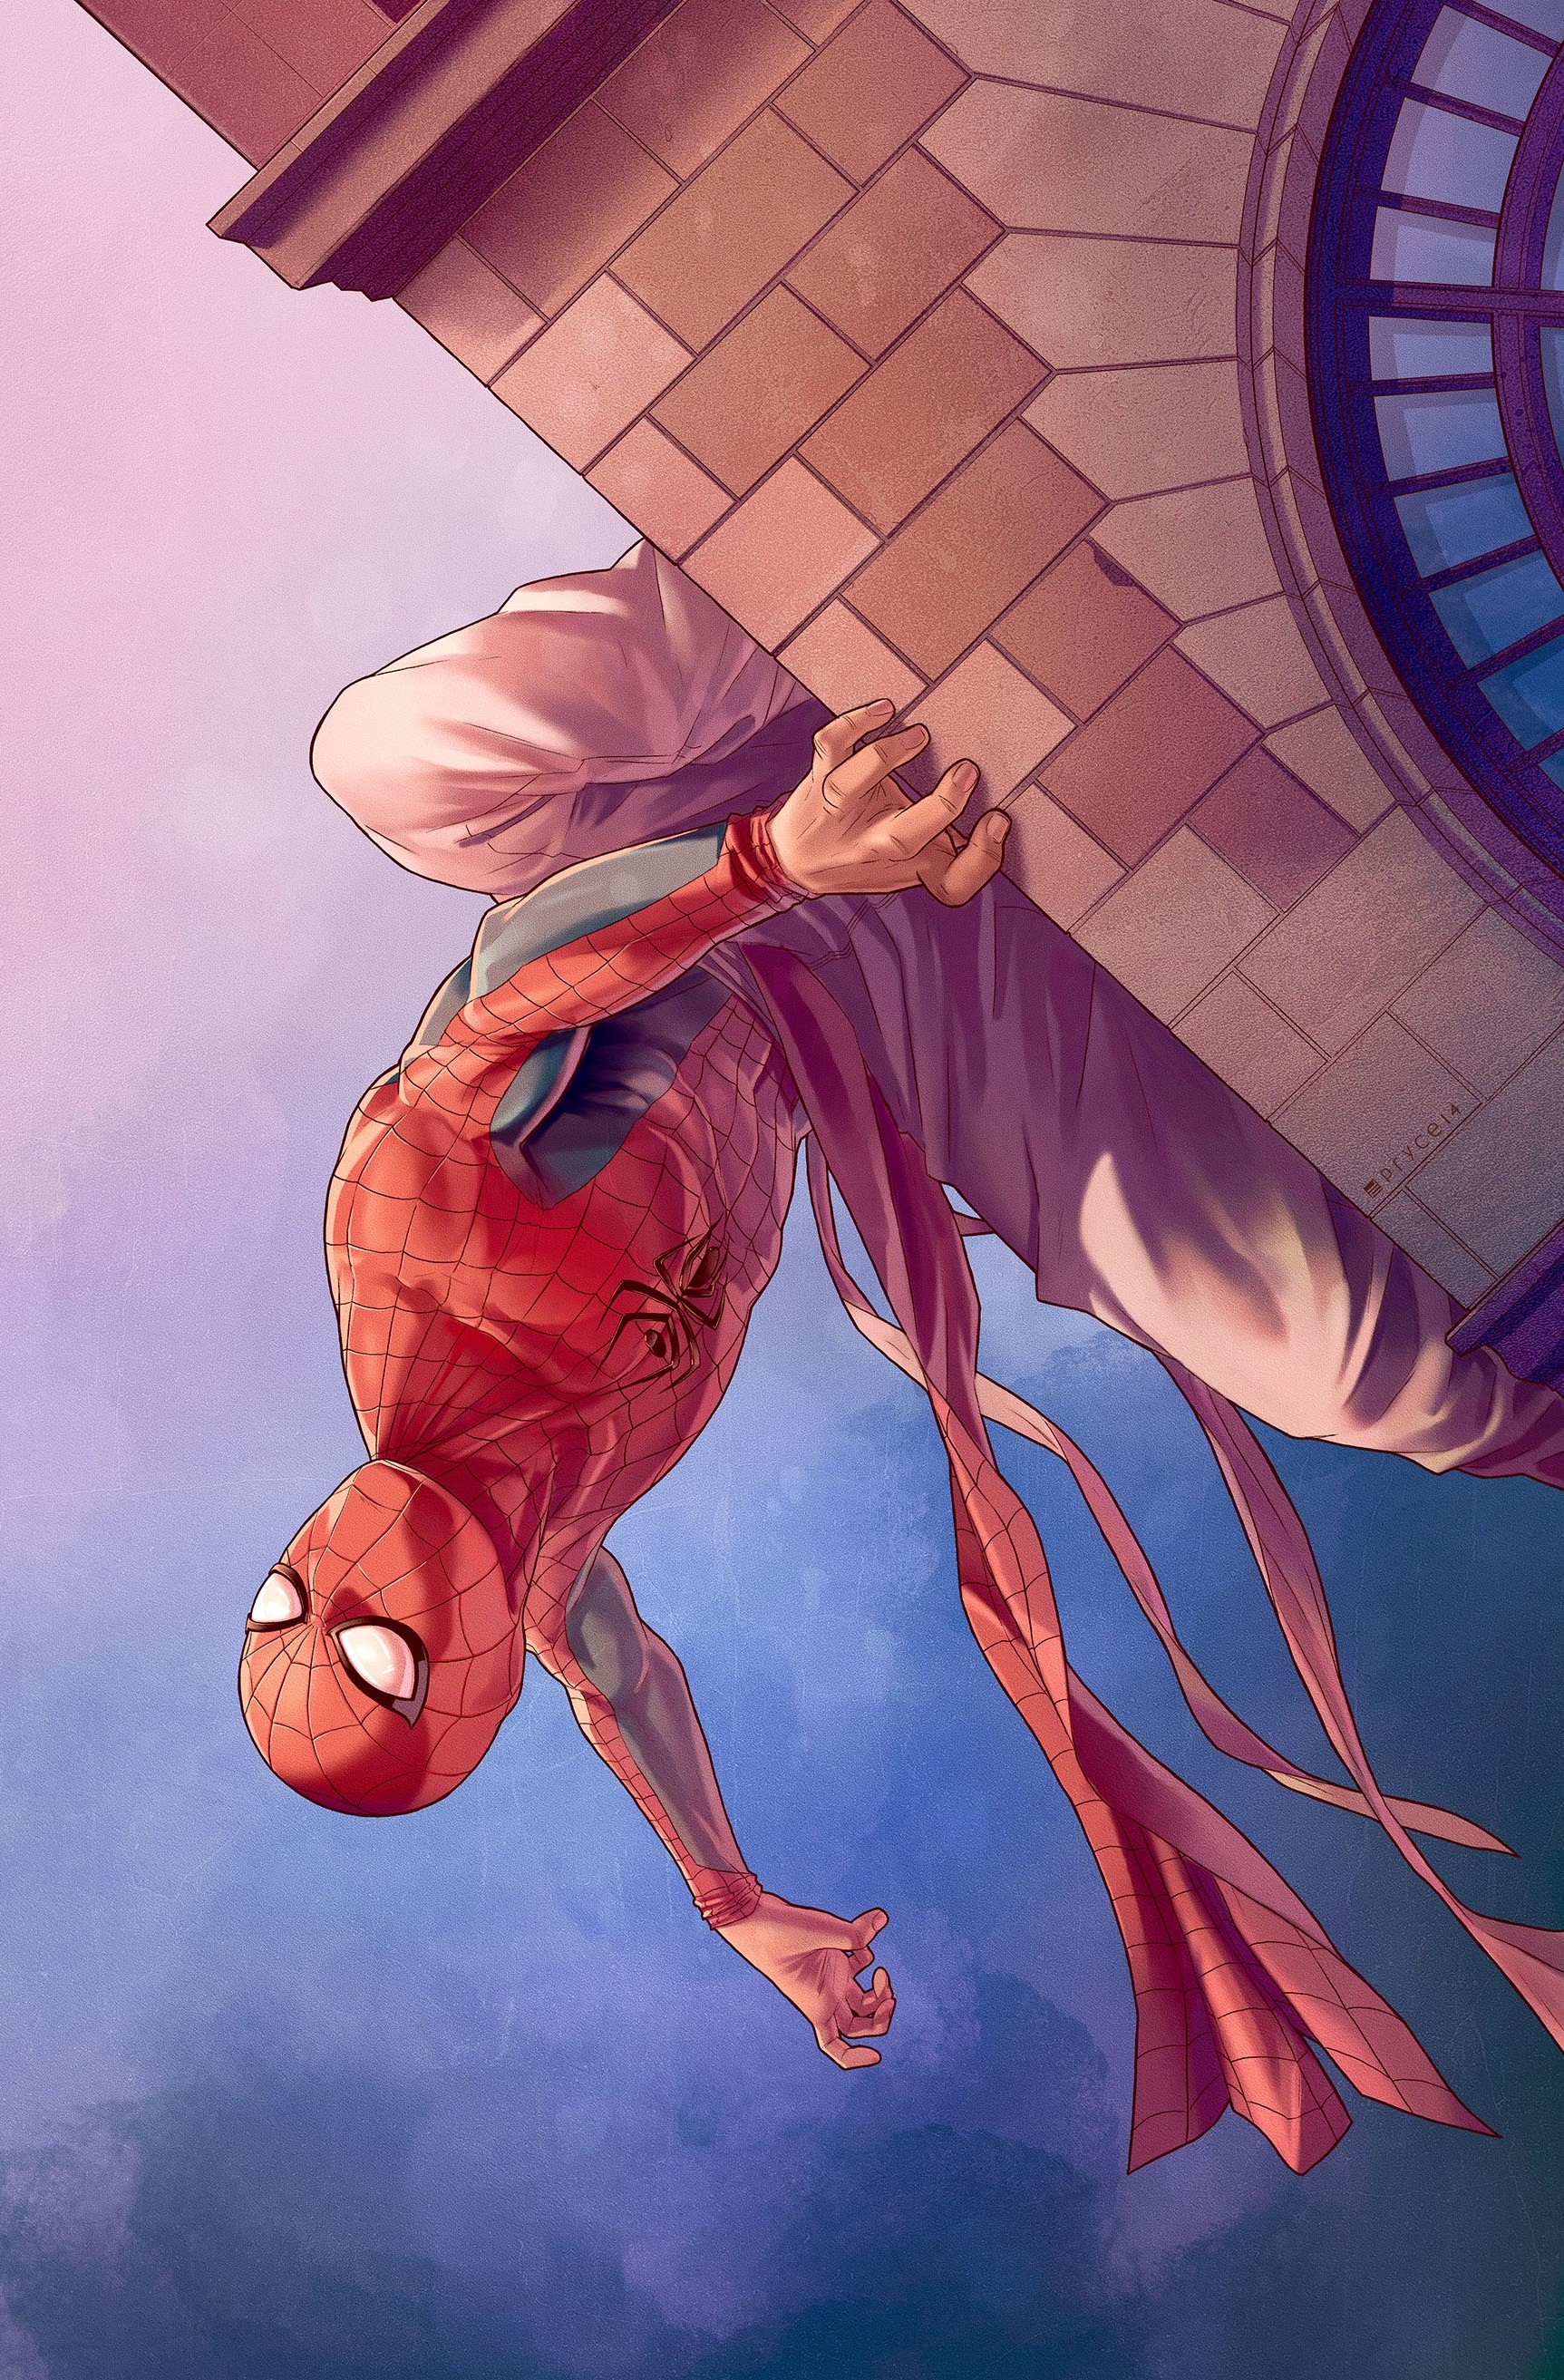 Secret Wars: Spider-Verse #5 Variant